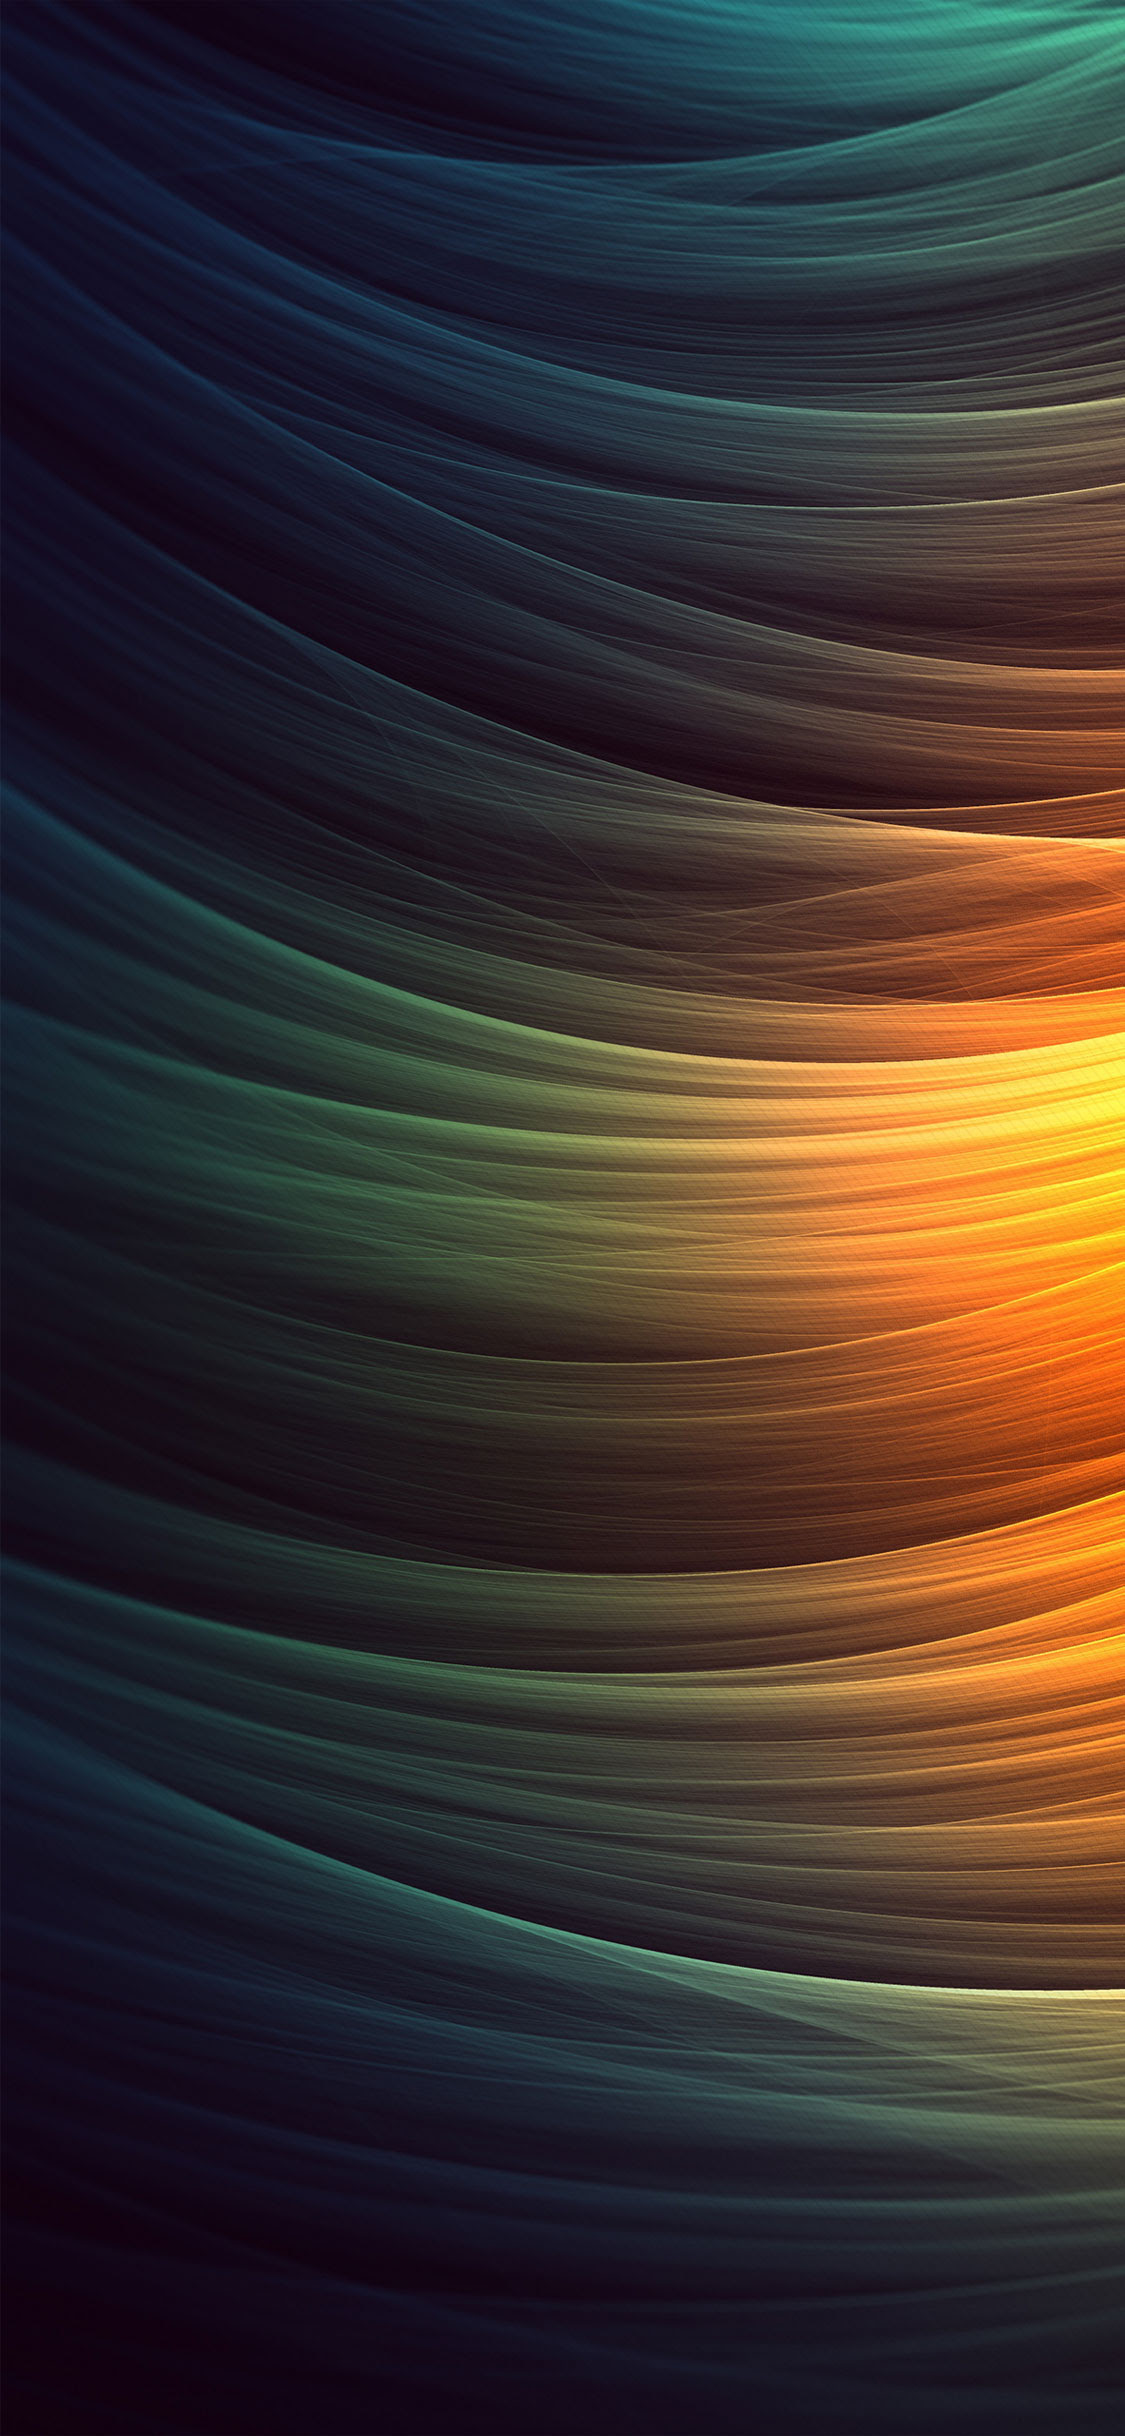 30+ New Cool iPhone X Wallpapers & Backgrounds to freshen up your screen - Designbolts